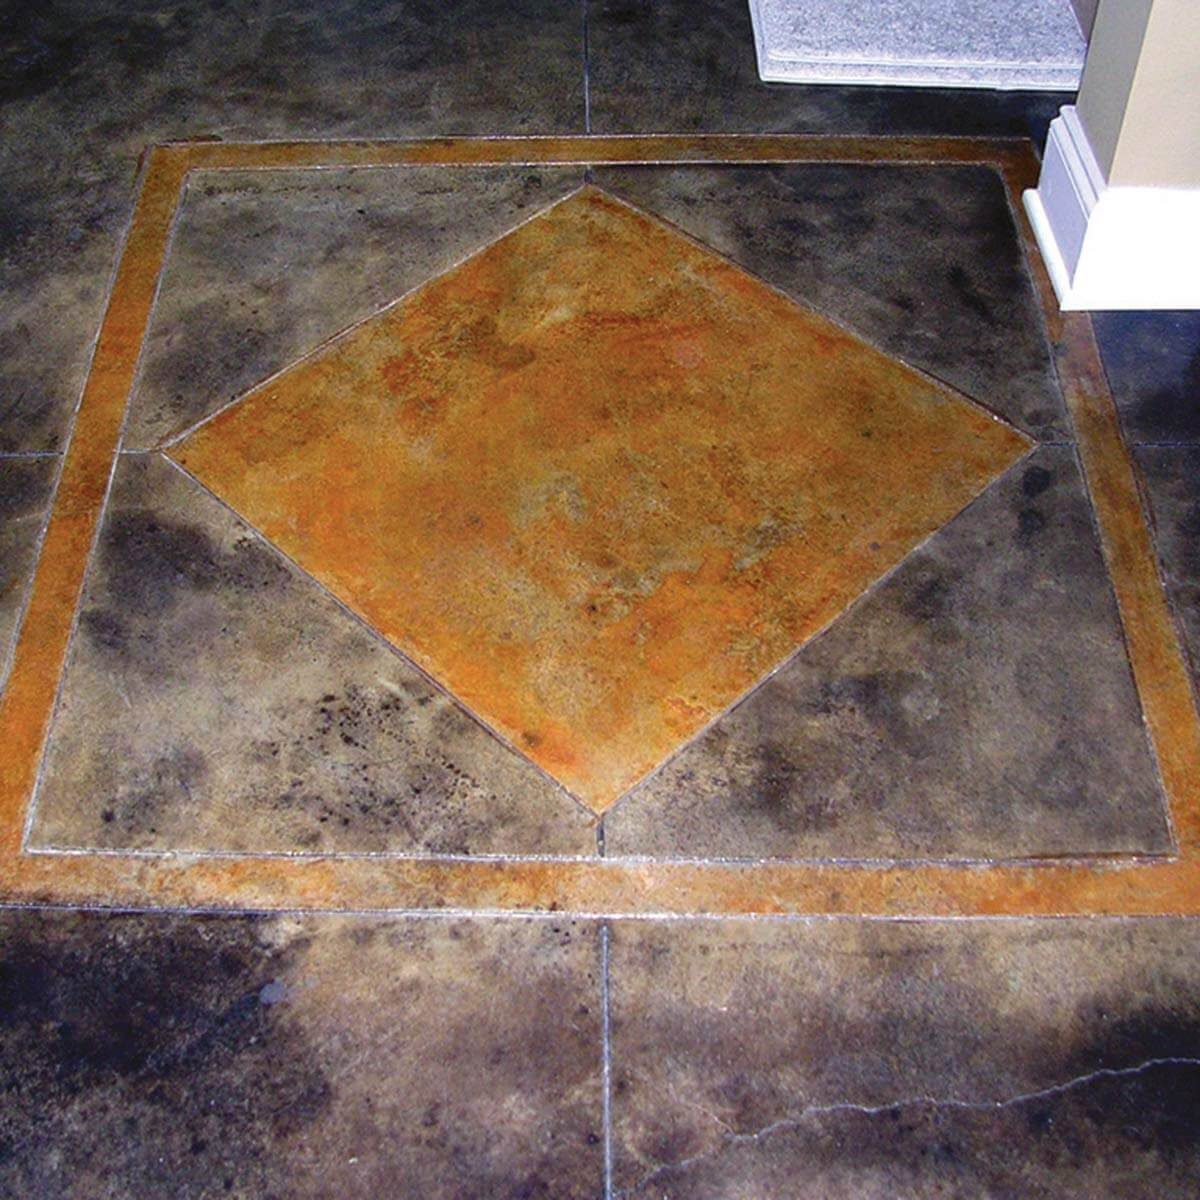 Concrete stained patterned floor